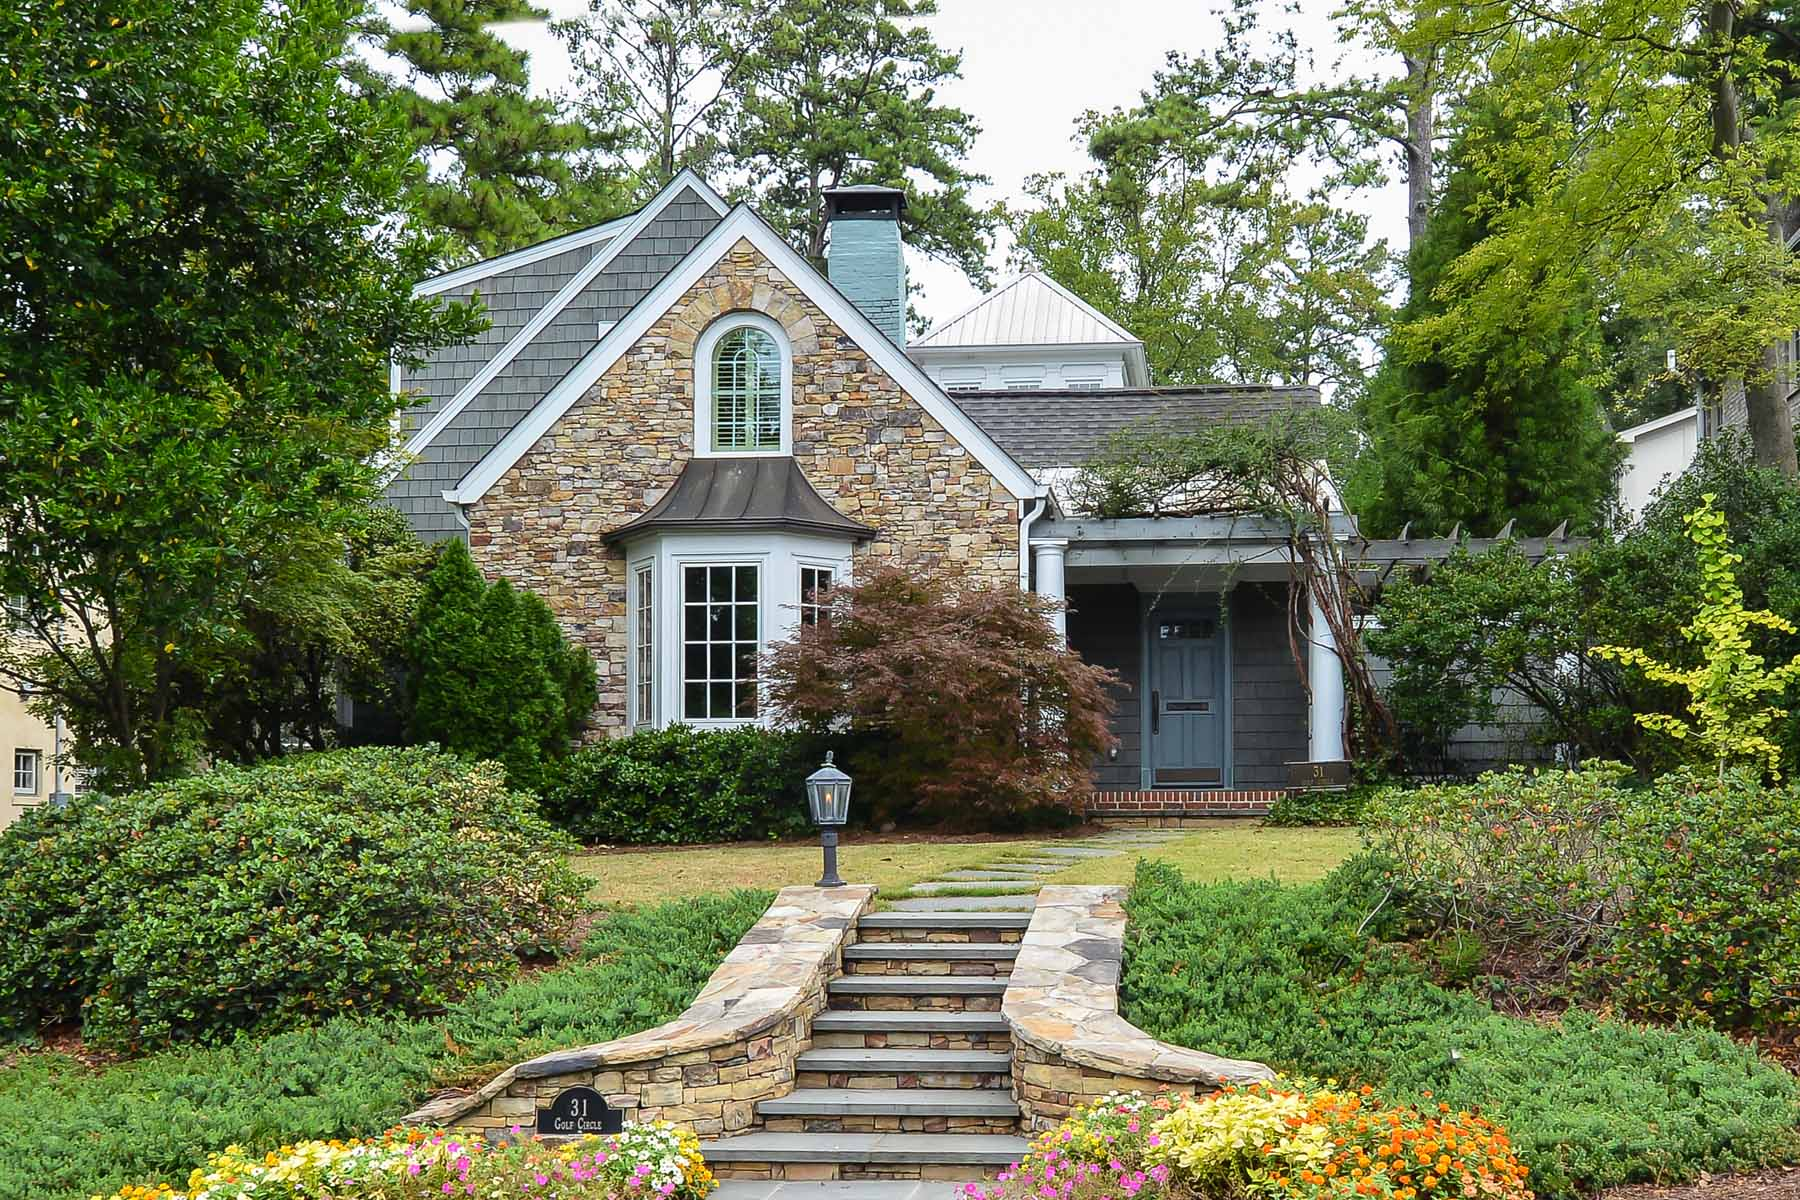 Property For Sale at Charming Ansley Park Home!